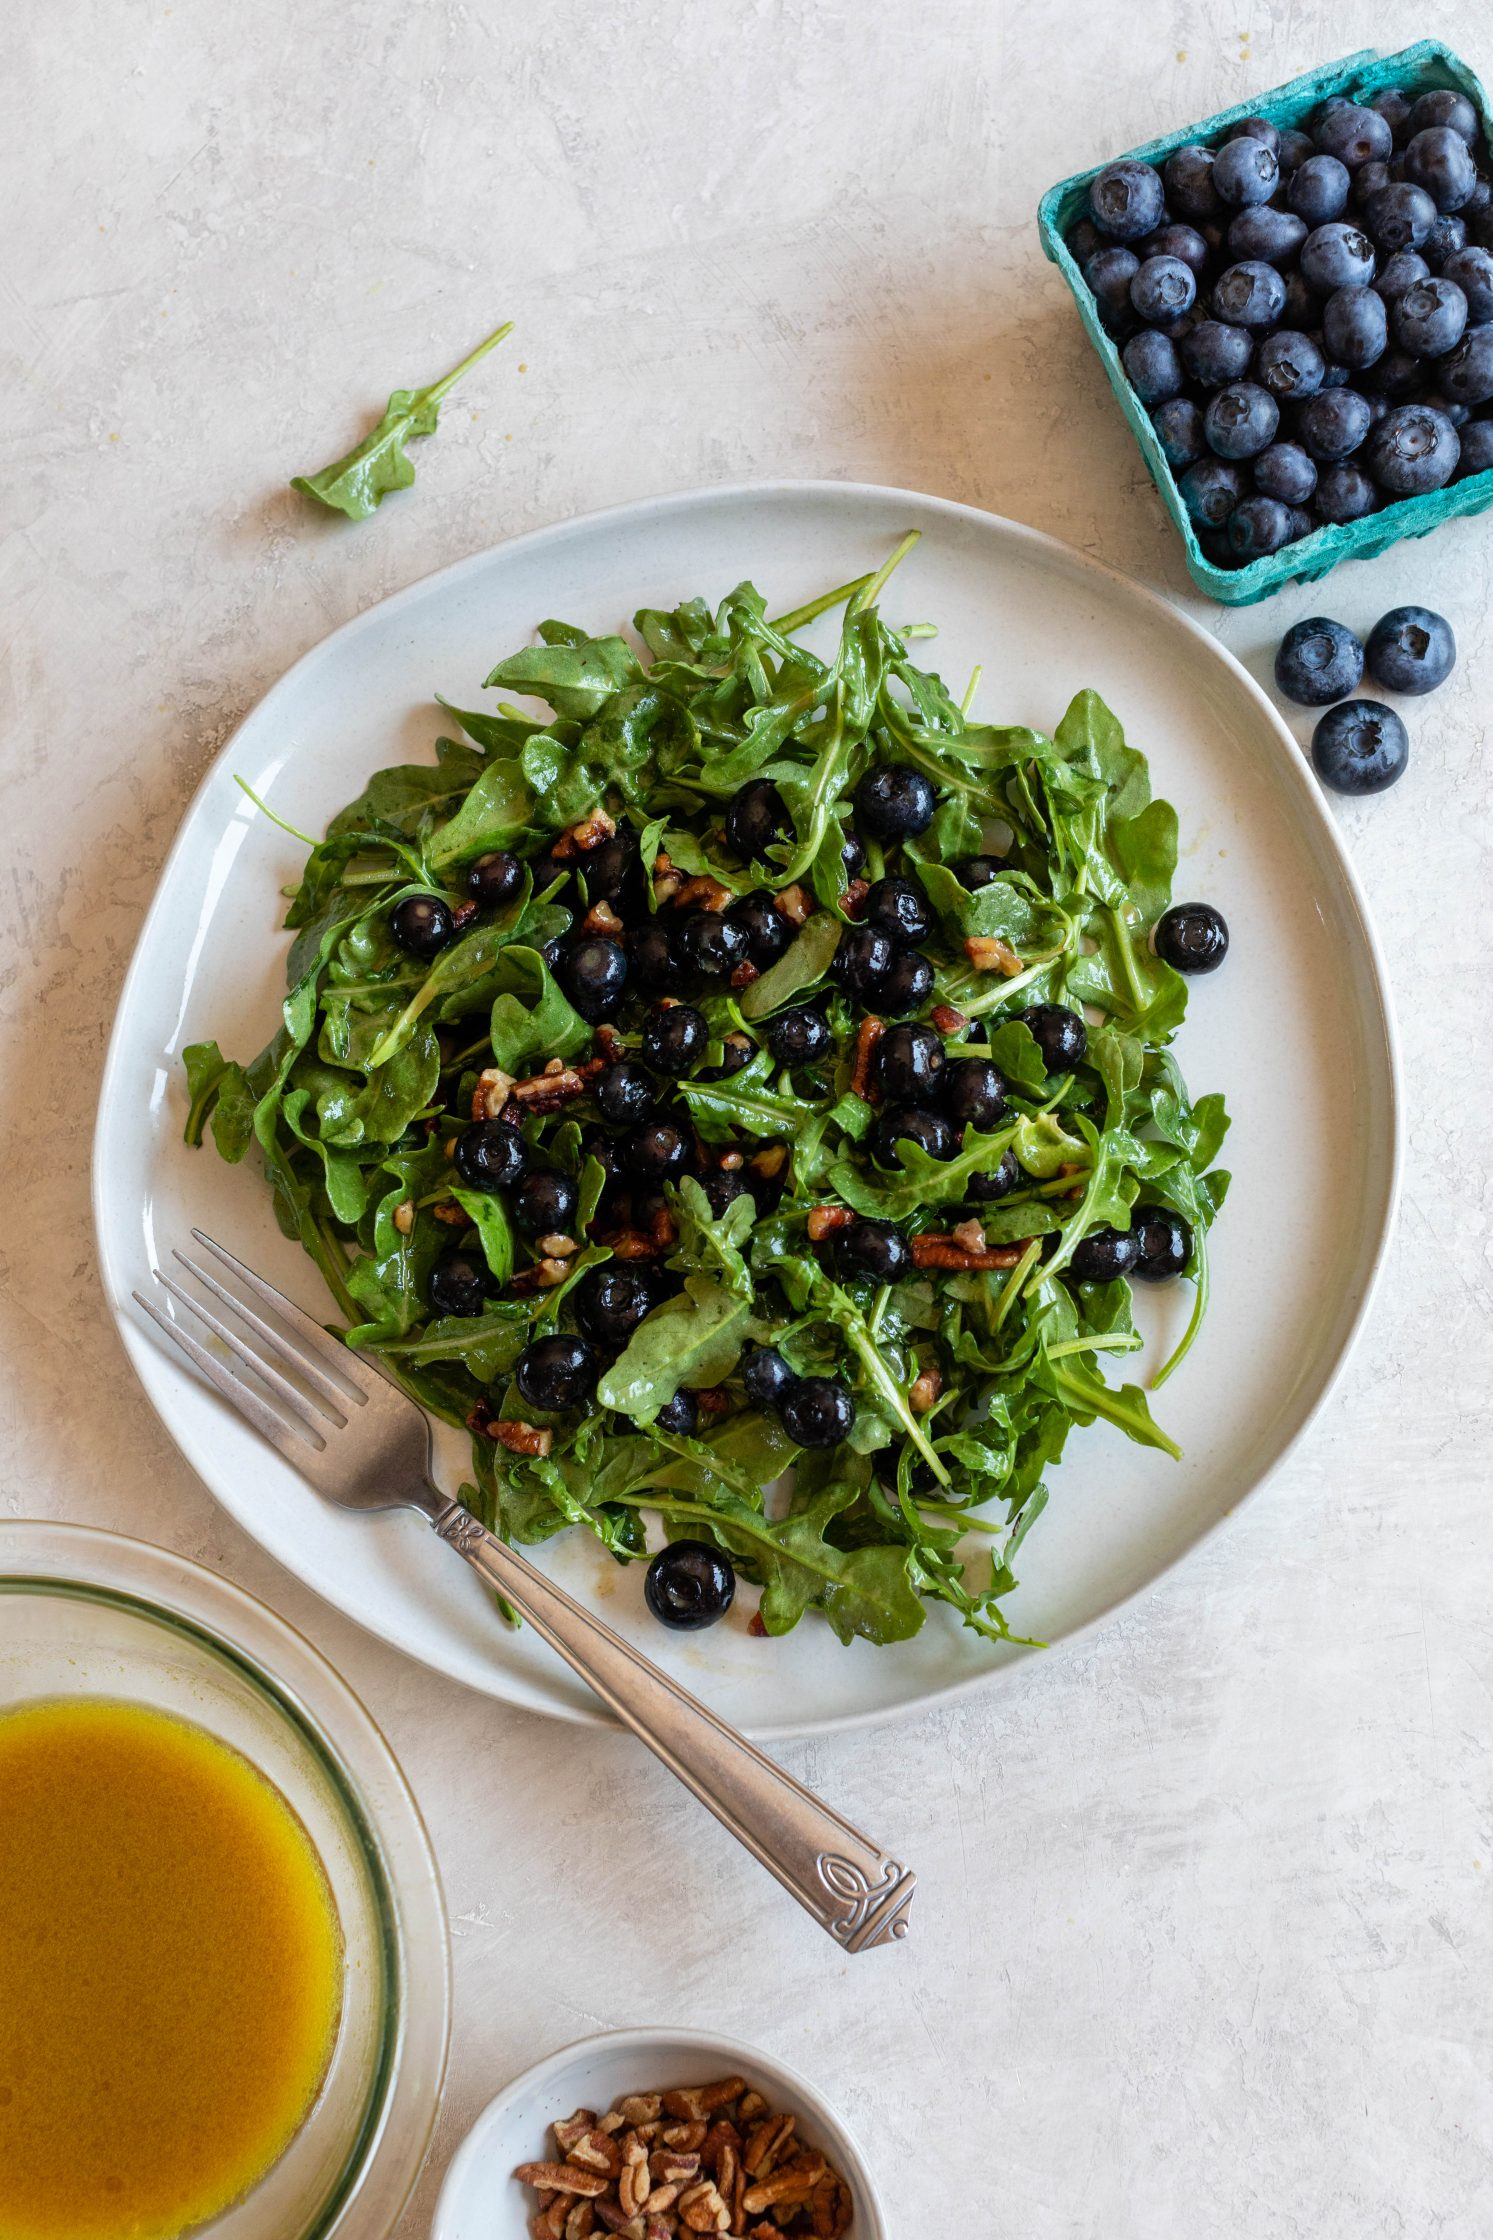 Blueberry Pecan Arugula Salad with Blueberry Vinaigrette by Flora & Vino